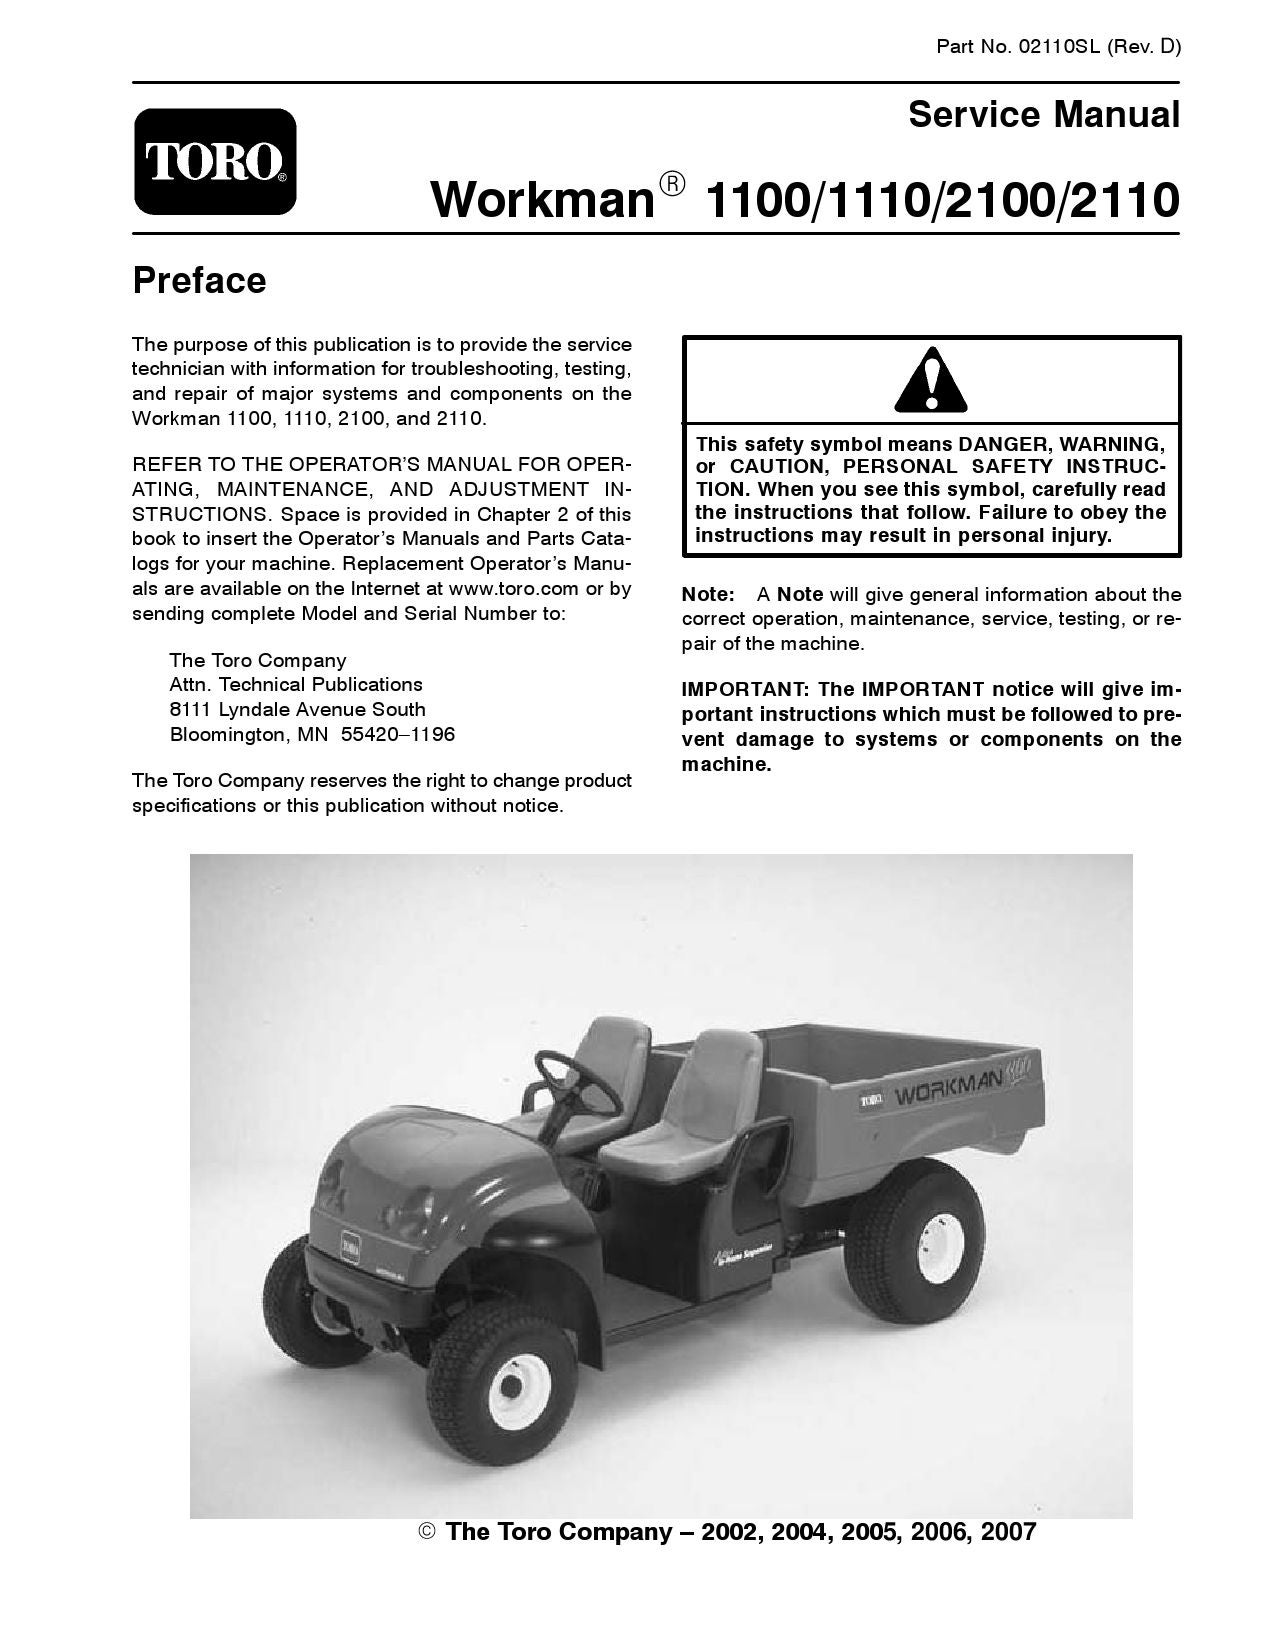 hight resolution of 02110sl pdf workman 1100 1110 2100 2110 rev d aug 2007 by rh issuu com toro lawn mower wiring diagram toro riding mower wiring diagrams